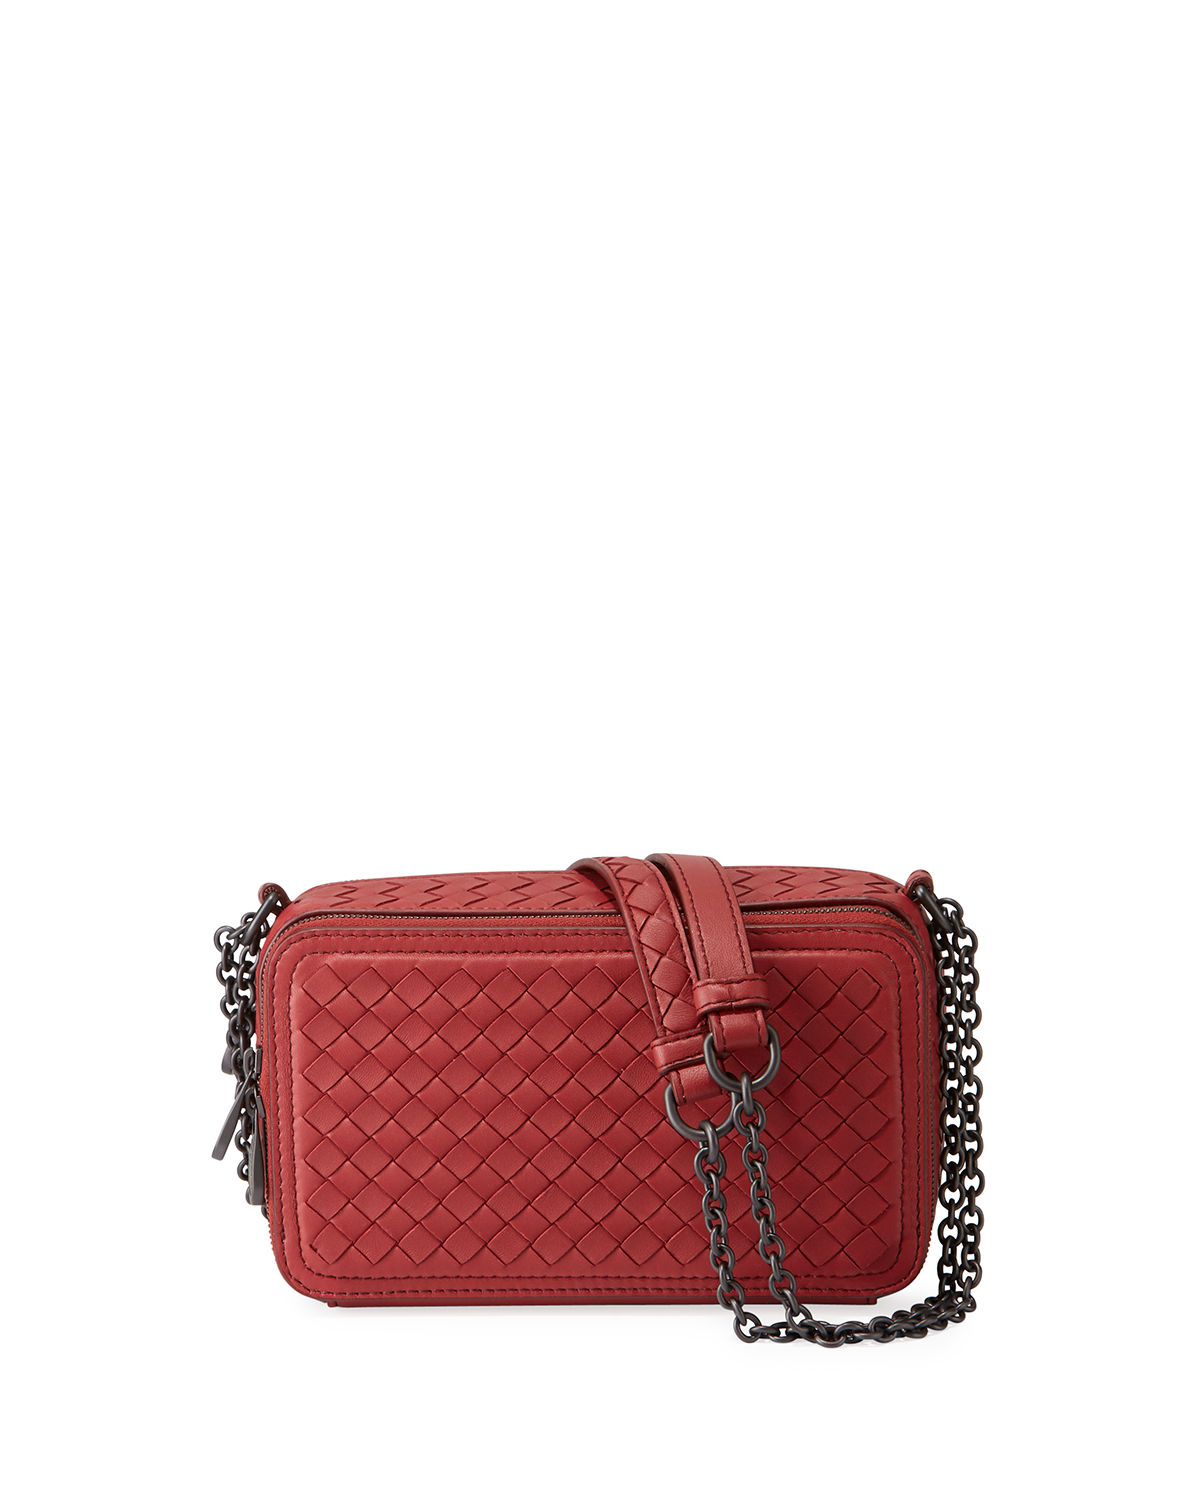 45d1cfb133de Bottega Veneta Intrecciato Leather Zip-Around Box Crossbody Bag ...